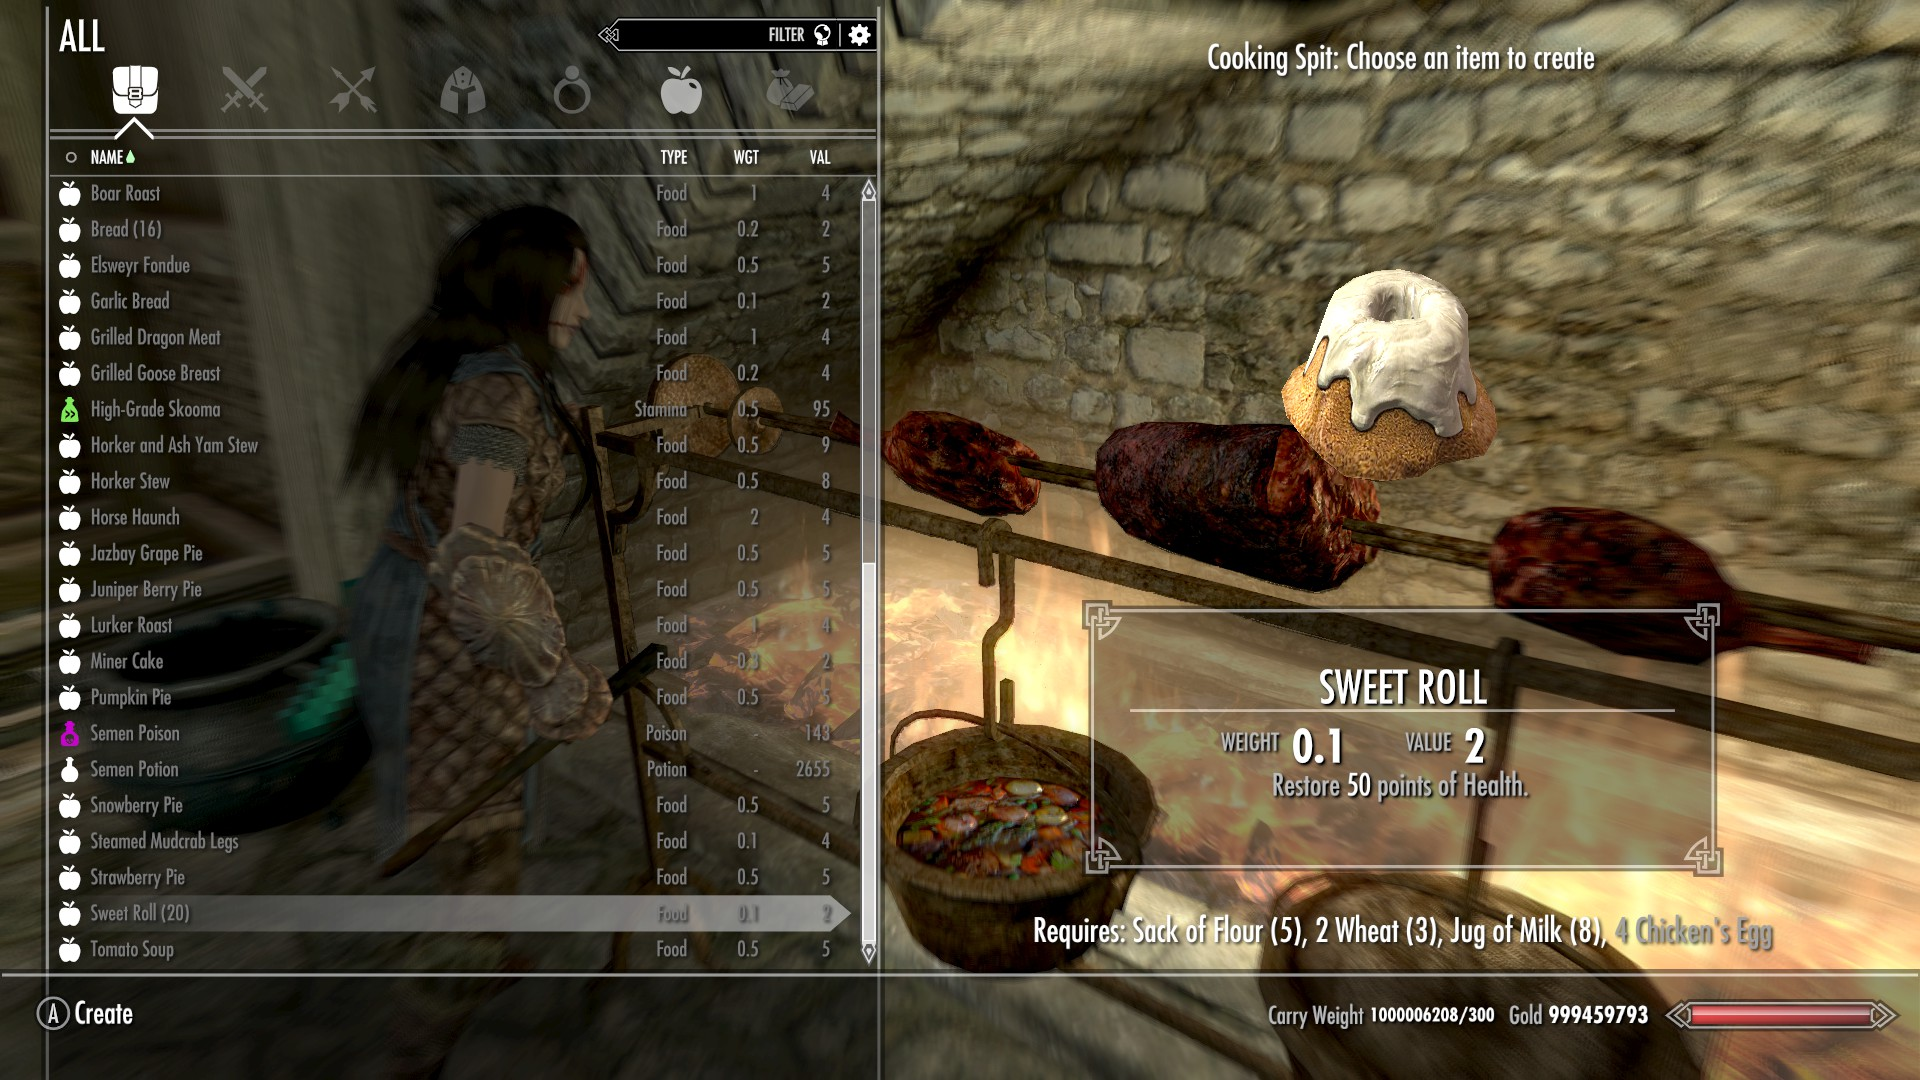 Sweet Roll Time At Skyrim Nexus Mods And Community - Imagez co